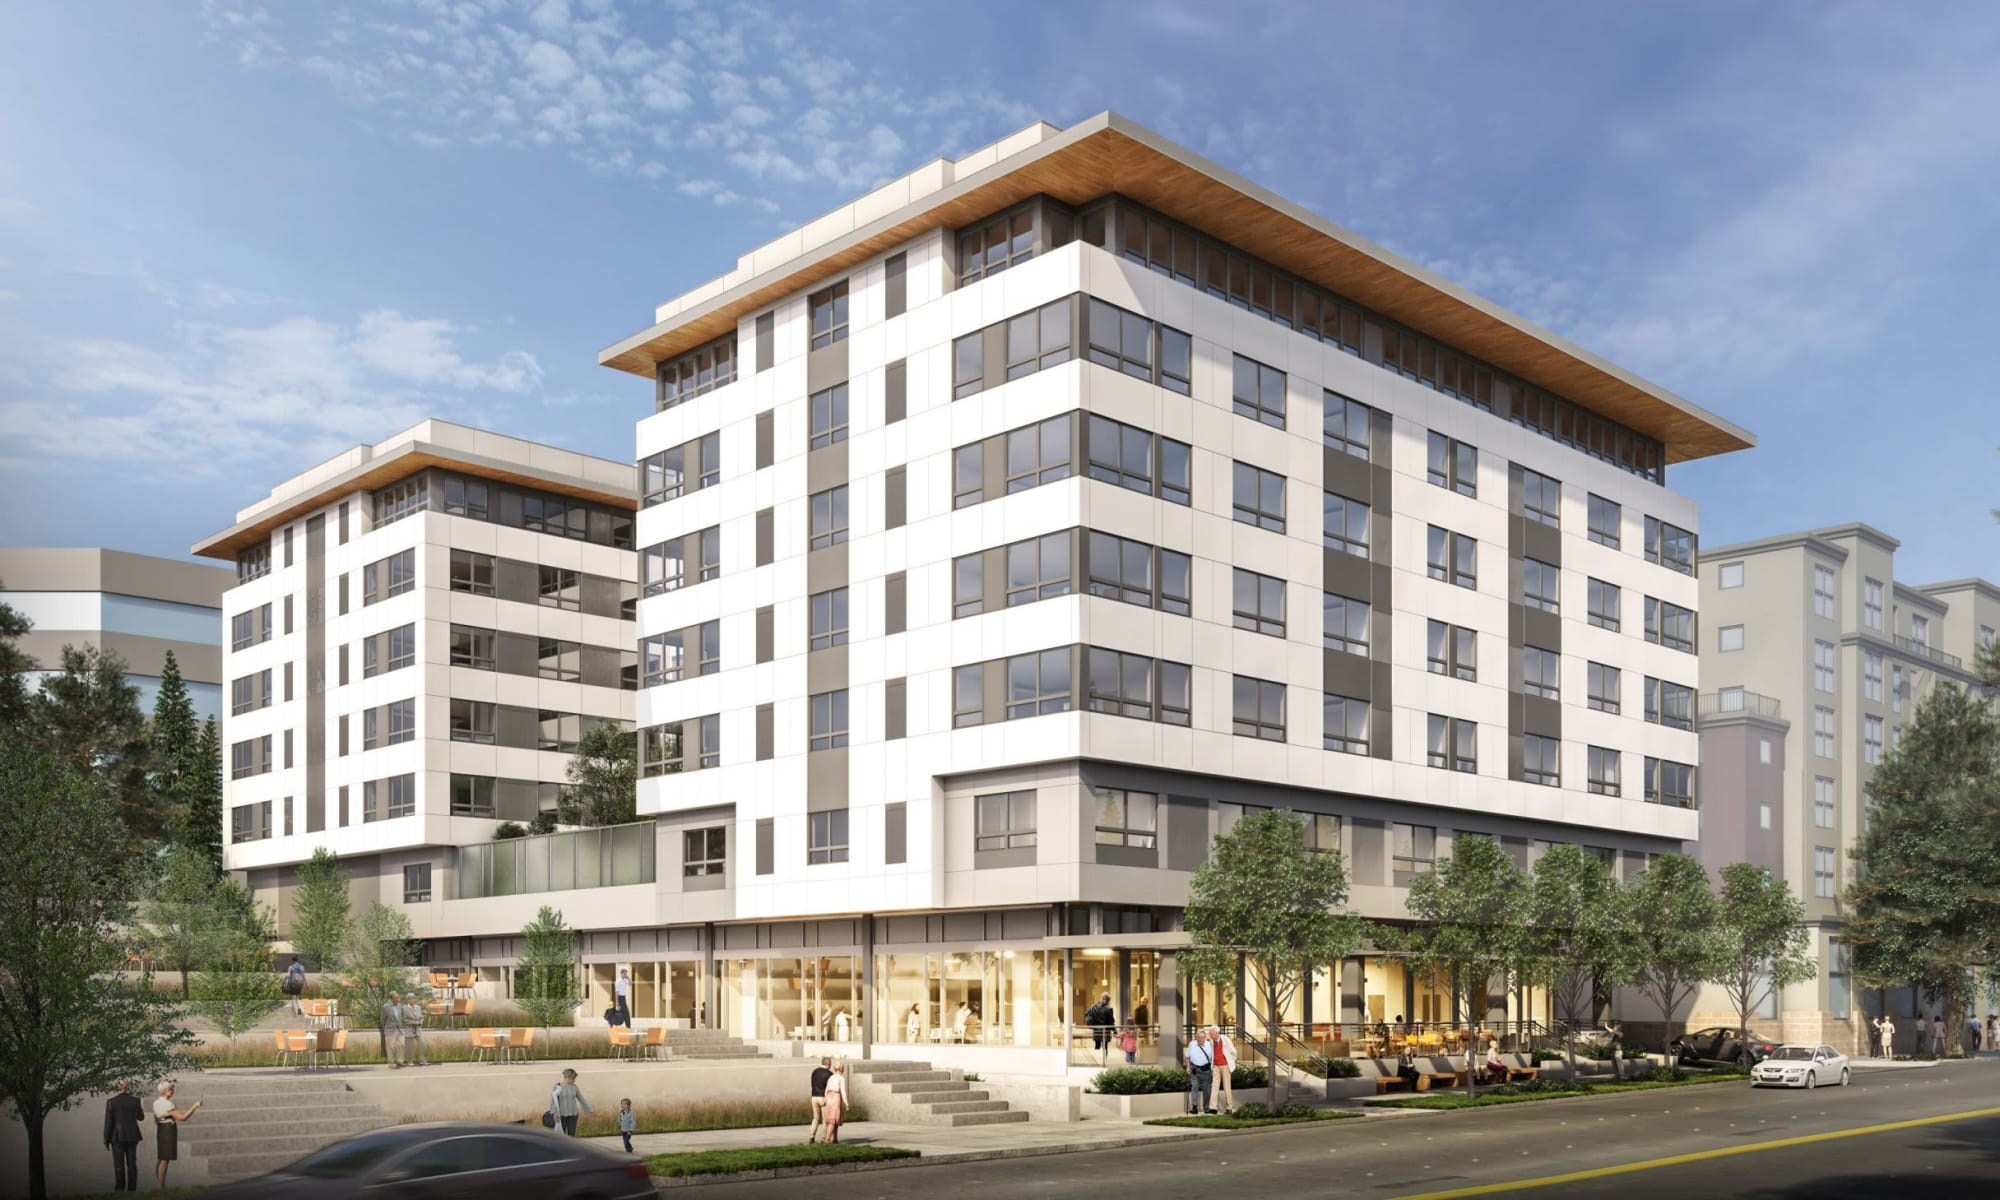 Artist rendering of the west face of resident apartment building at Holden at Bellevue in Bellevue, Washington